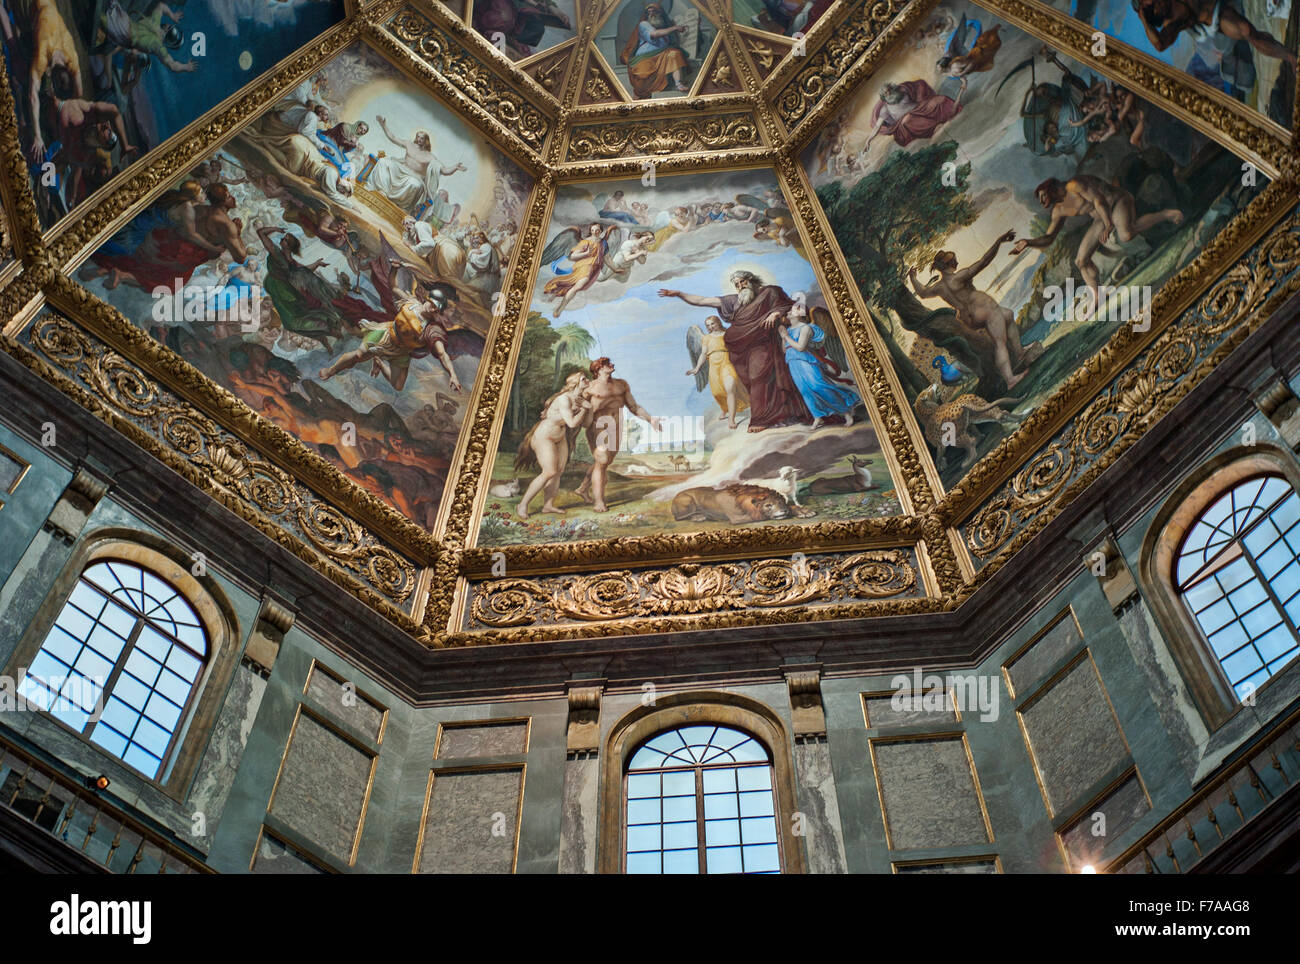 Medici Painted ceiling of the Chapel of the princes. Architect: Matteo Nagetti and Bernardo Buontalenti Medici Chapels, Stock Photo